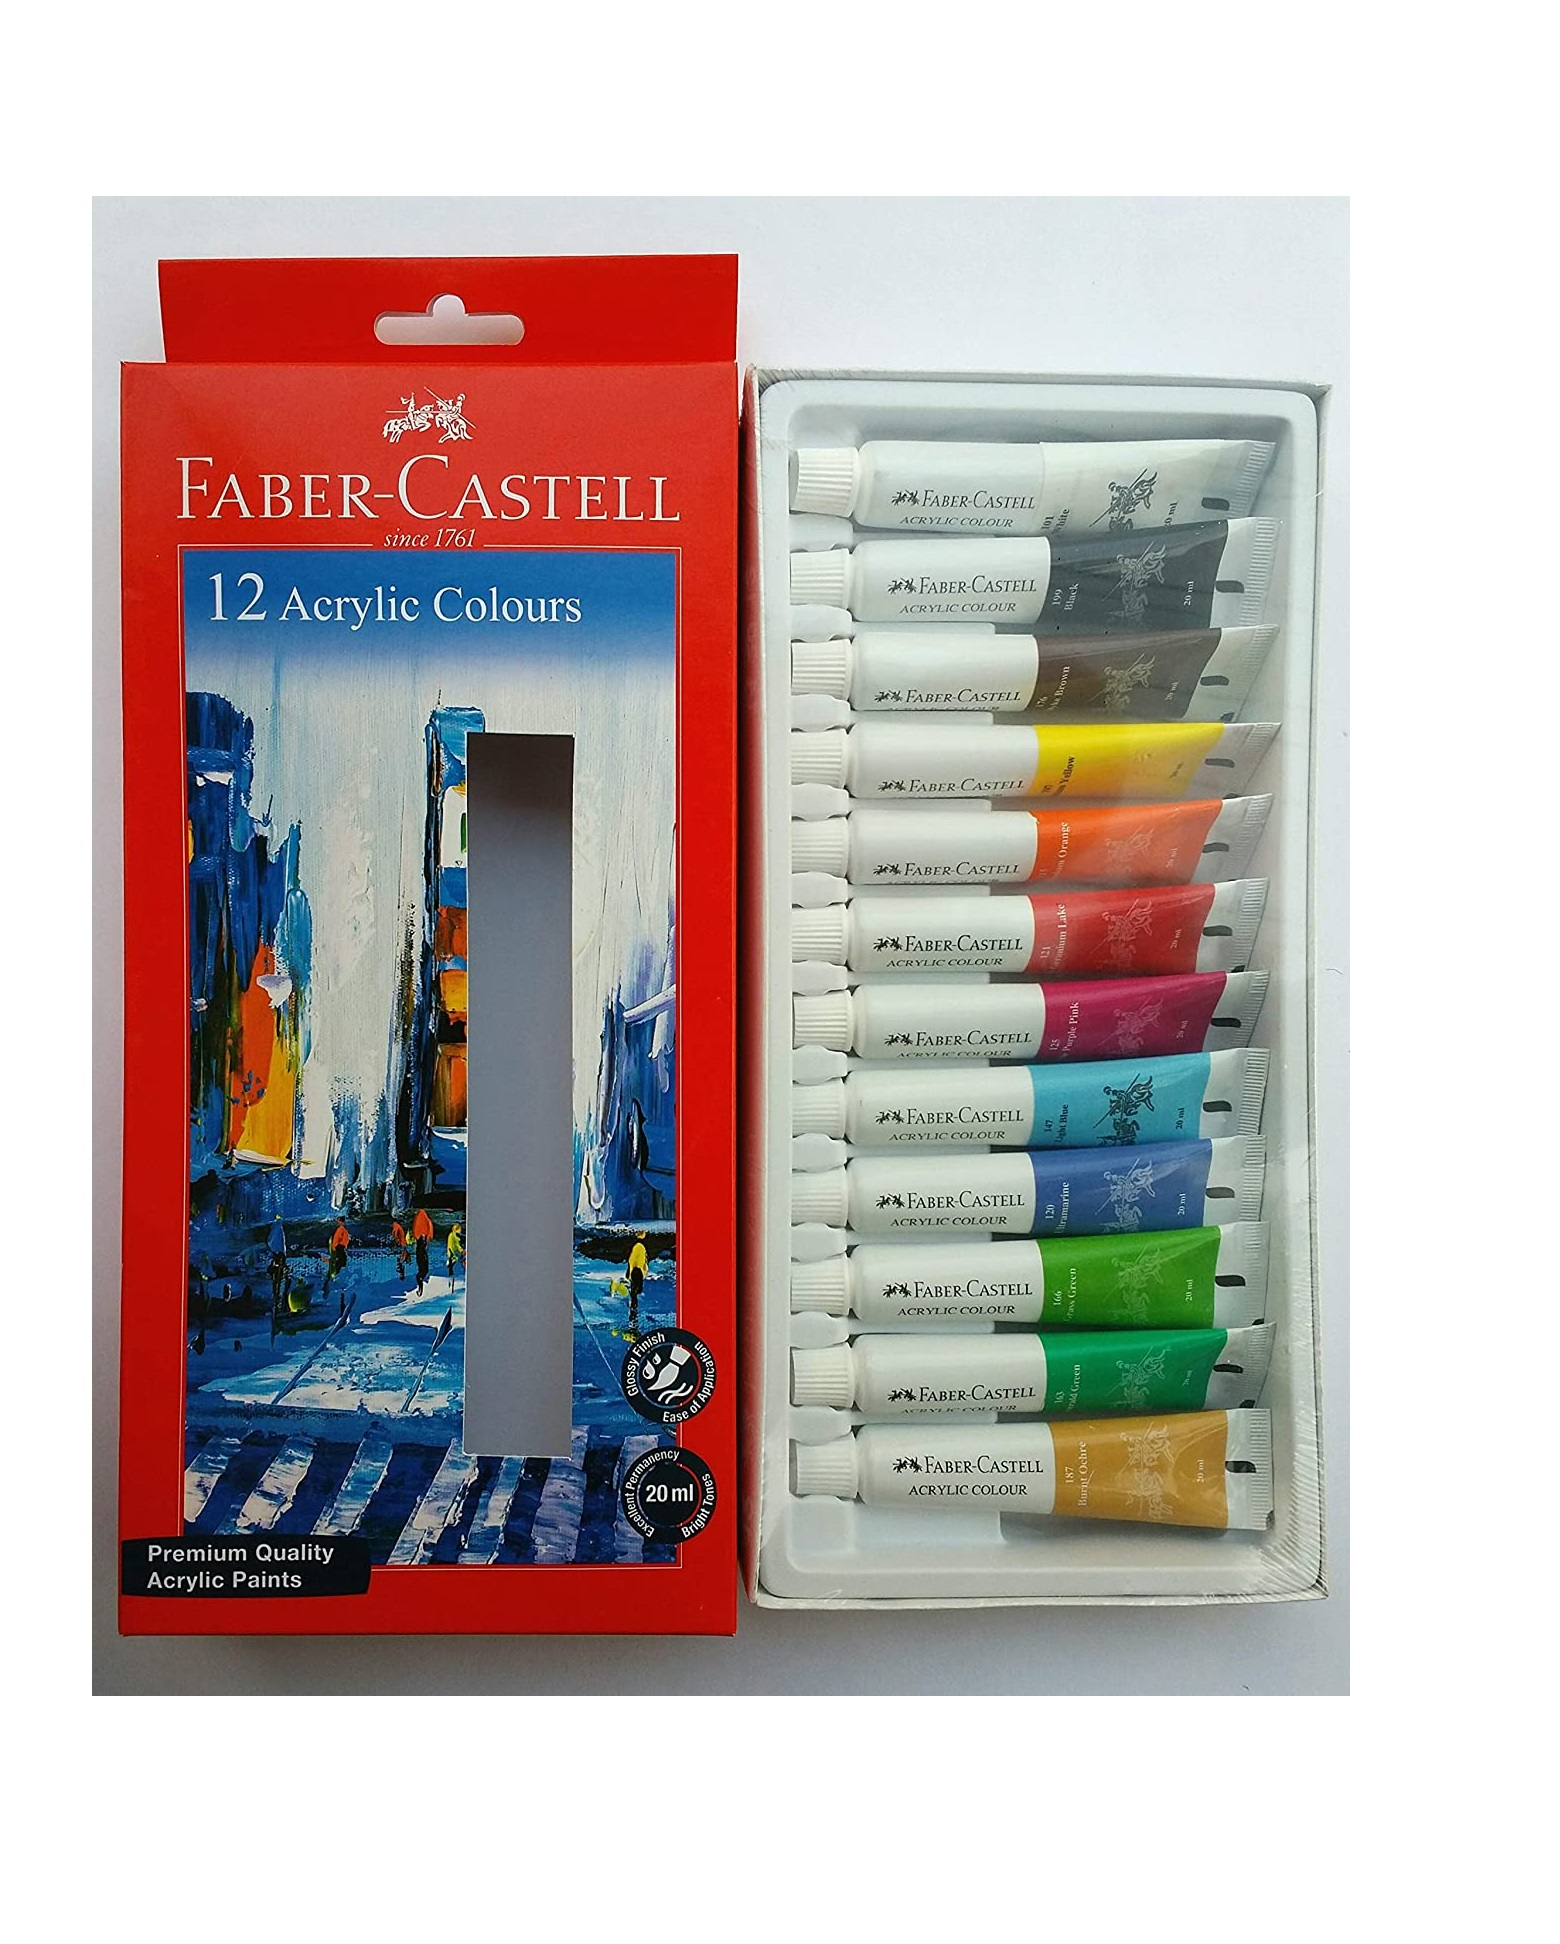 Faber-Castell Premium Acrylic 20ml Colour (Pack of 12)